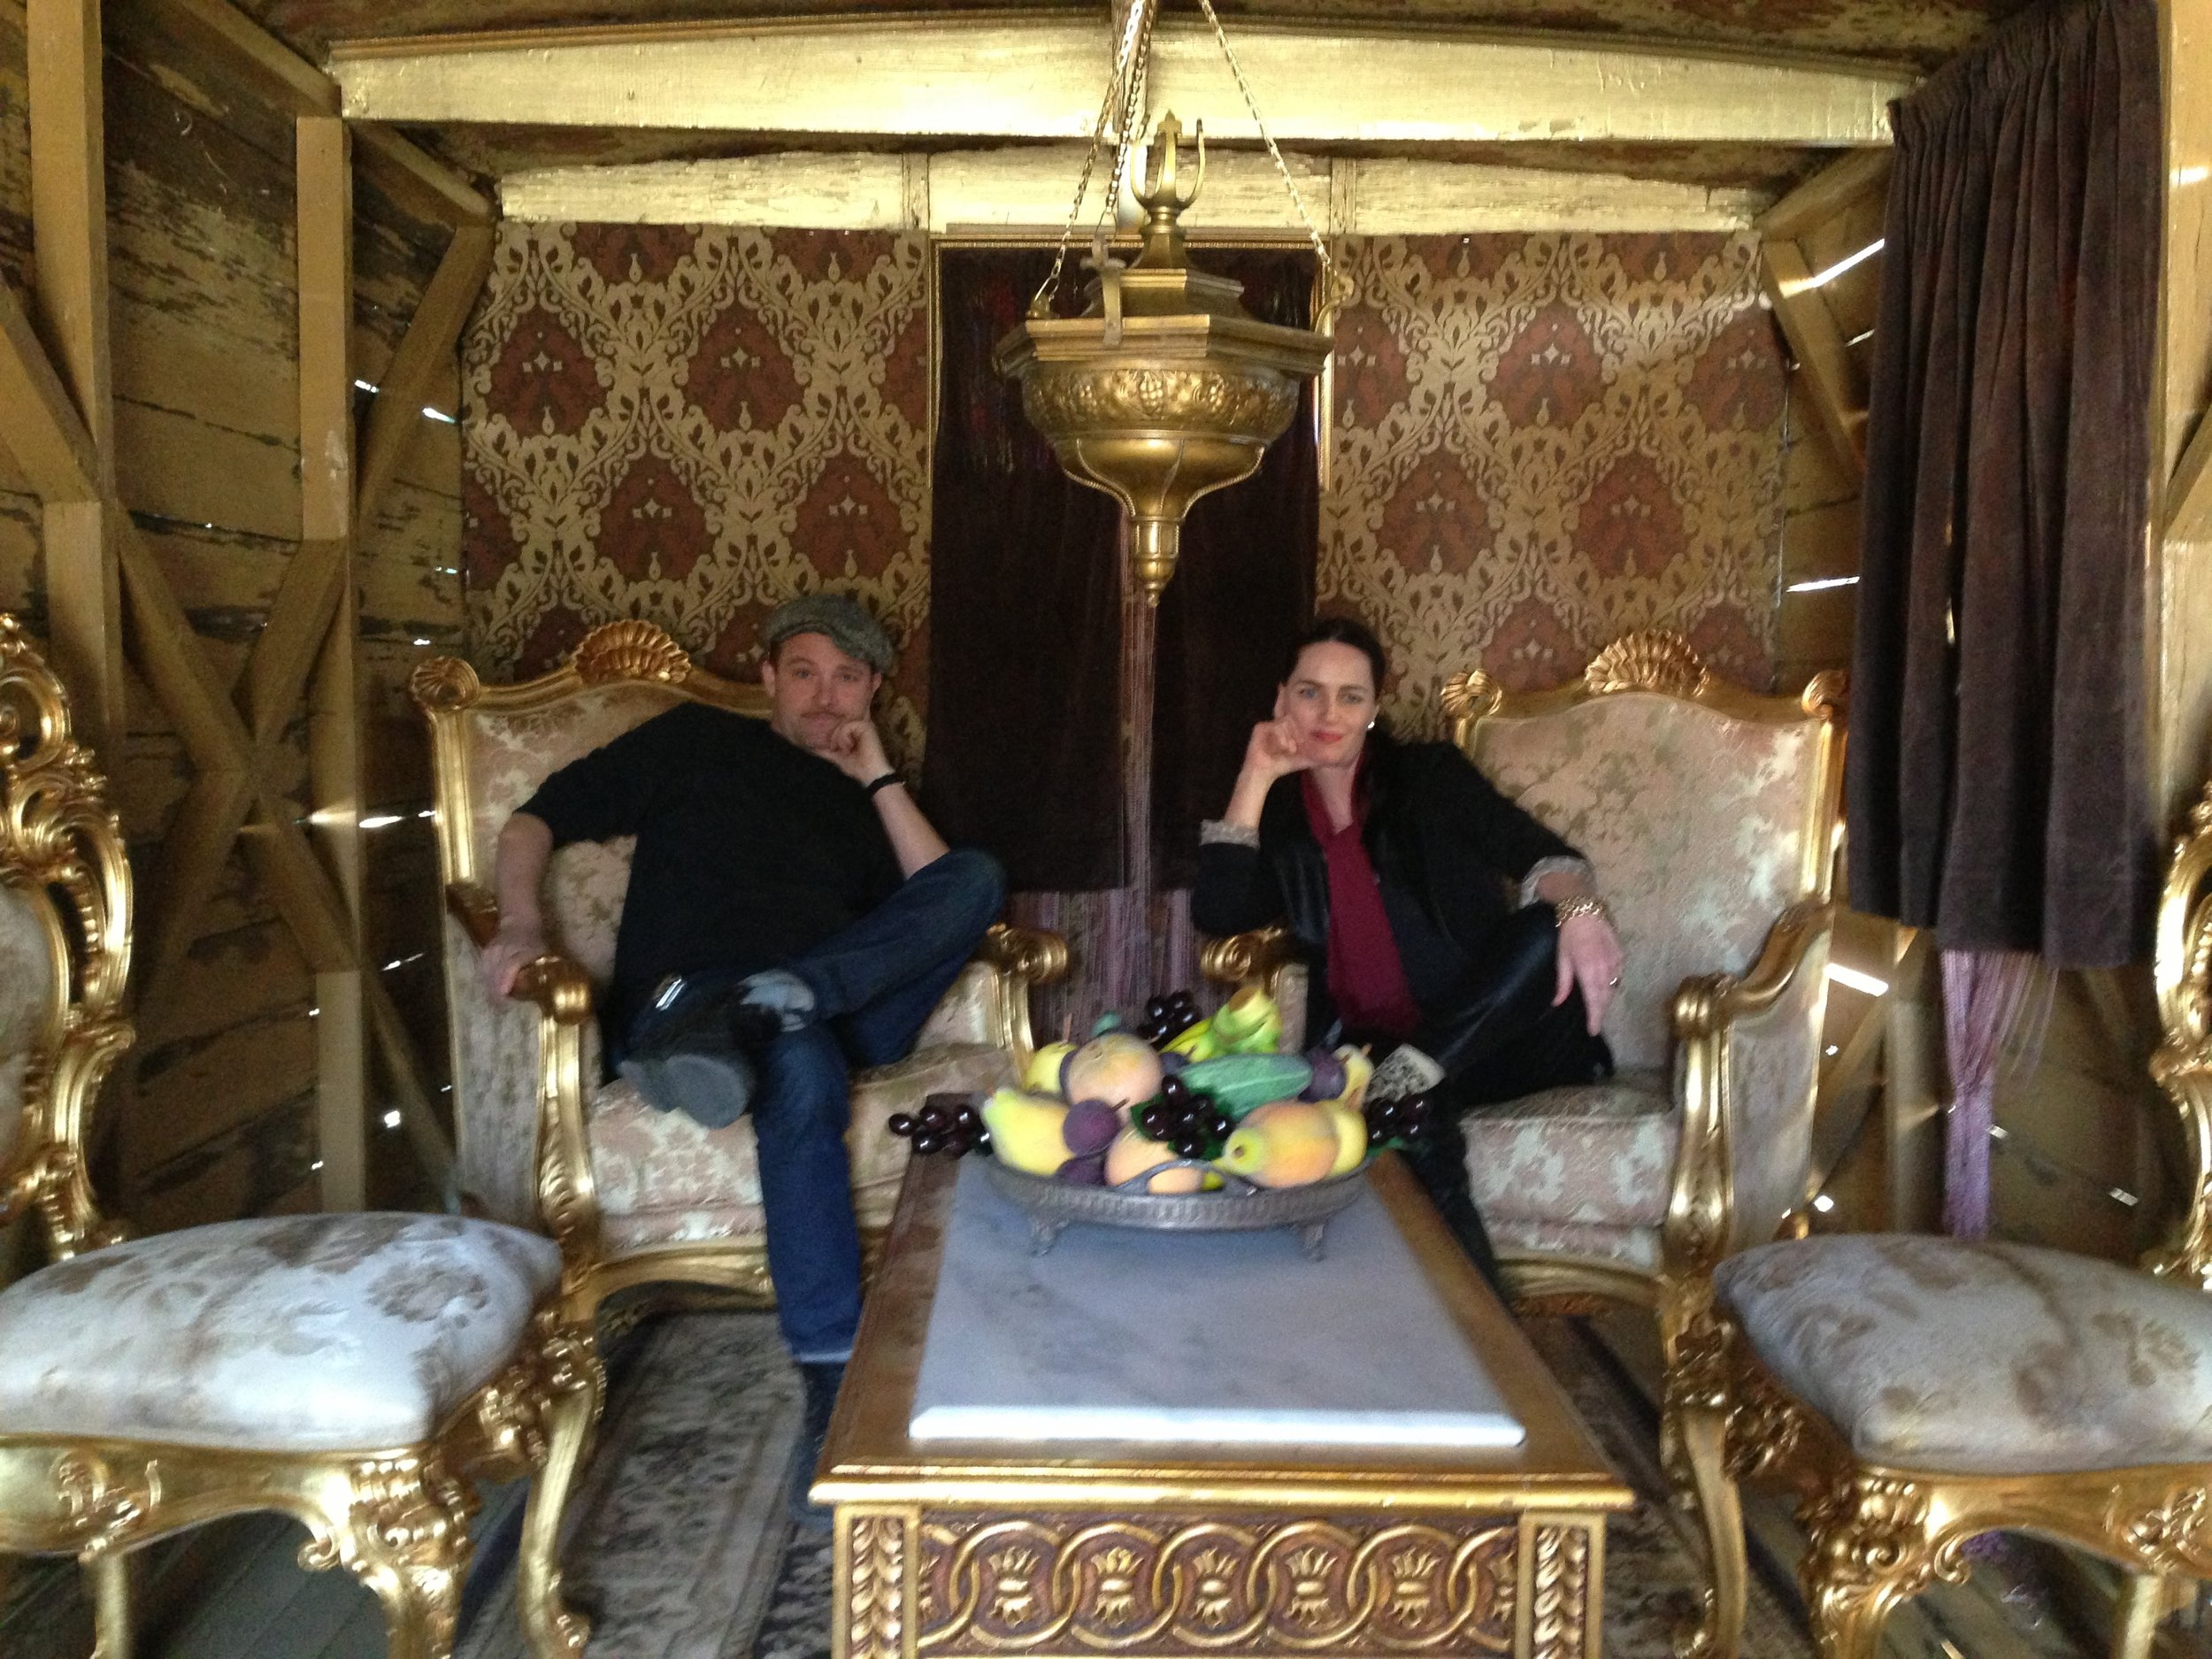 With my genius art director Christian Zollenkopf out scouting for props